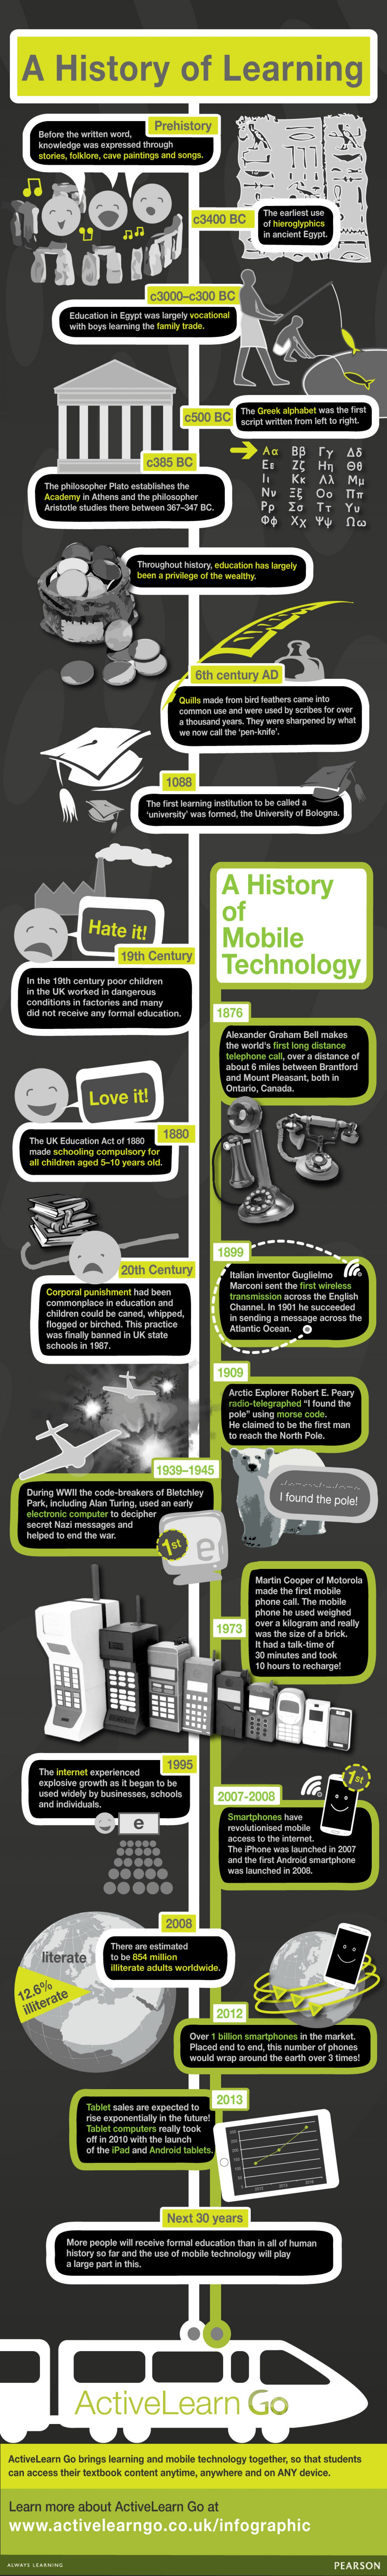 a-history-of-learning-a-history-of-mobile-technology_5272657169188_w1500